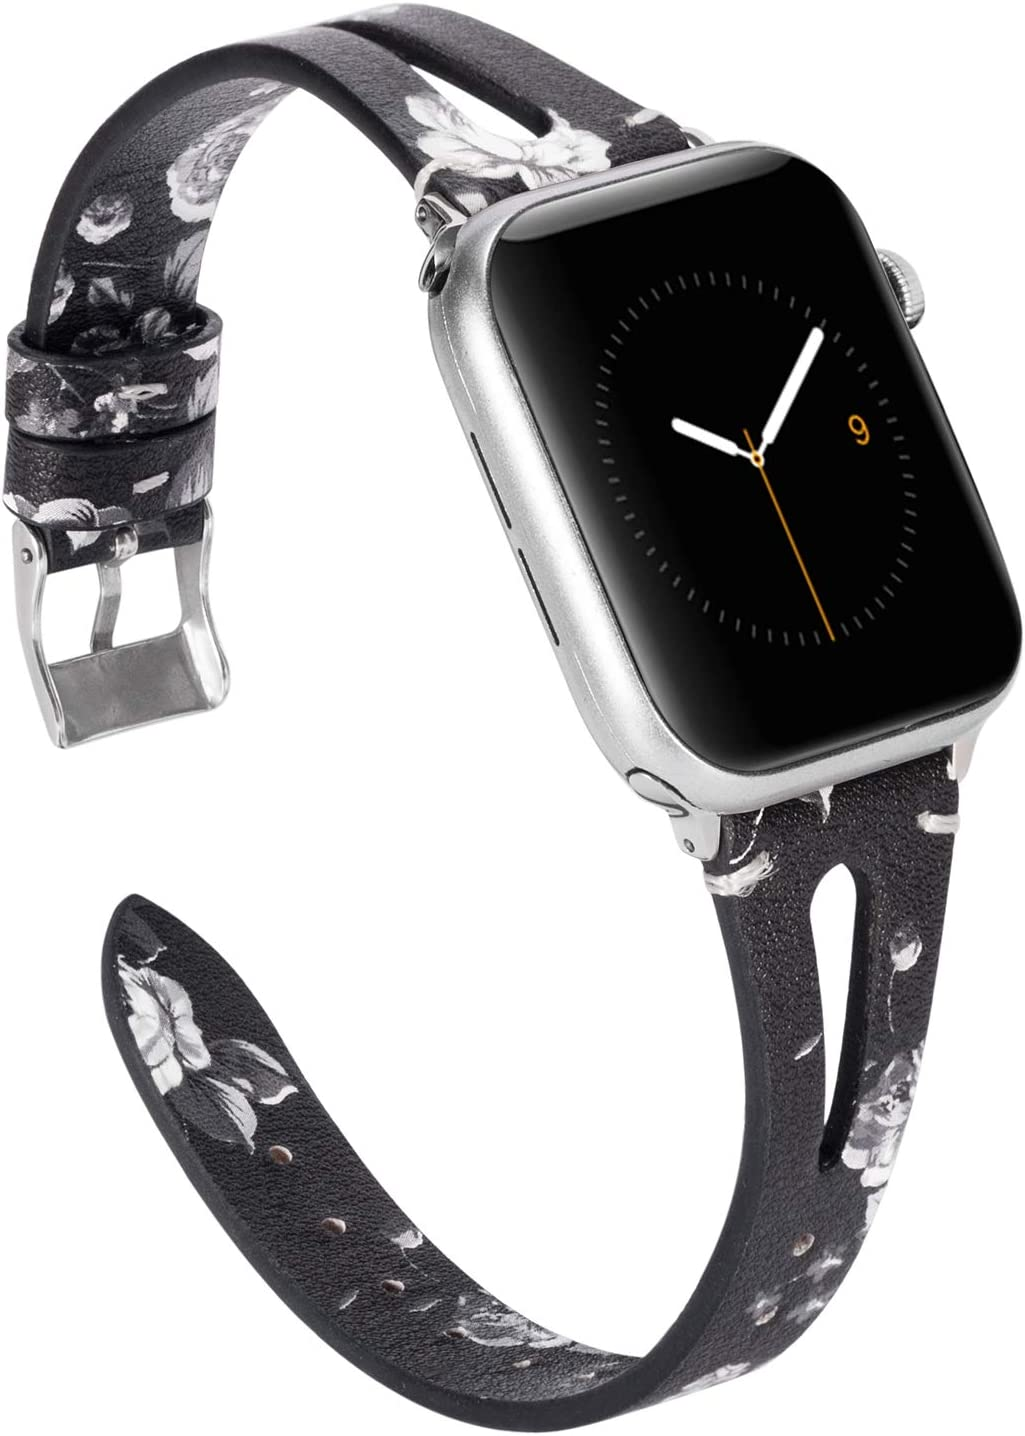 Wearlizer Black White Floral Womens Leather Compatible with Apple Watch Bands 38mm 40mm for iWatch SE Triangle Hole Strap Wristband Replacement Distinctive Bracelet (Silver Clasp) Series 6 5 4 3 2 1